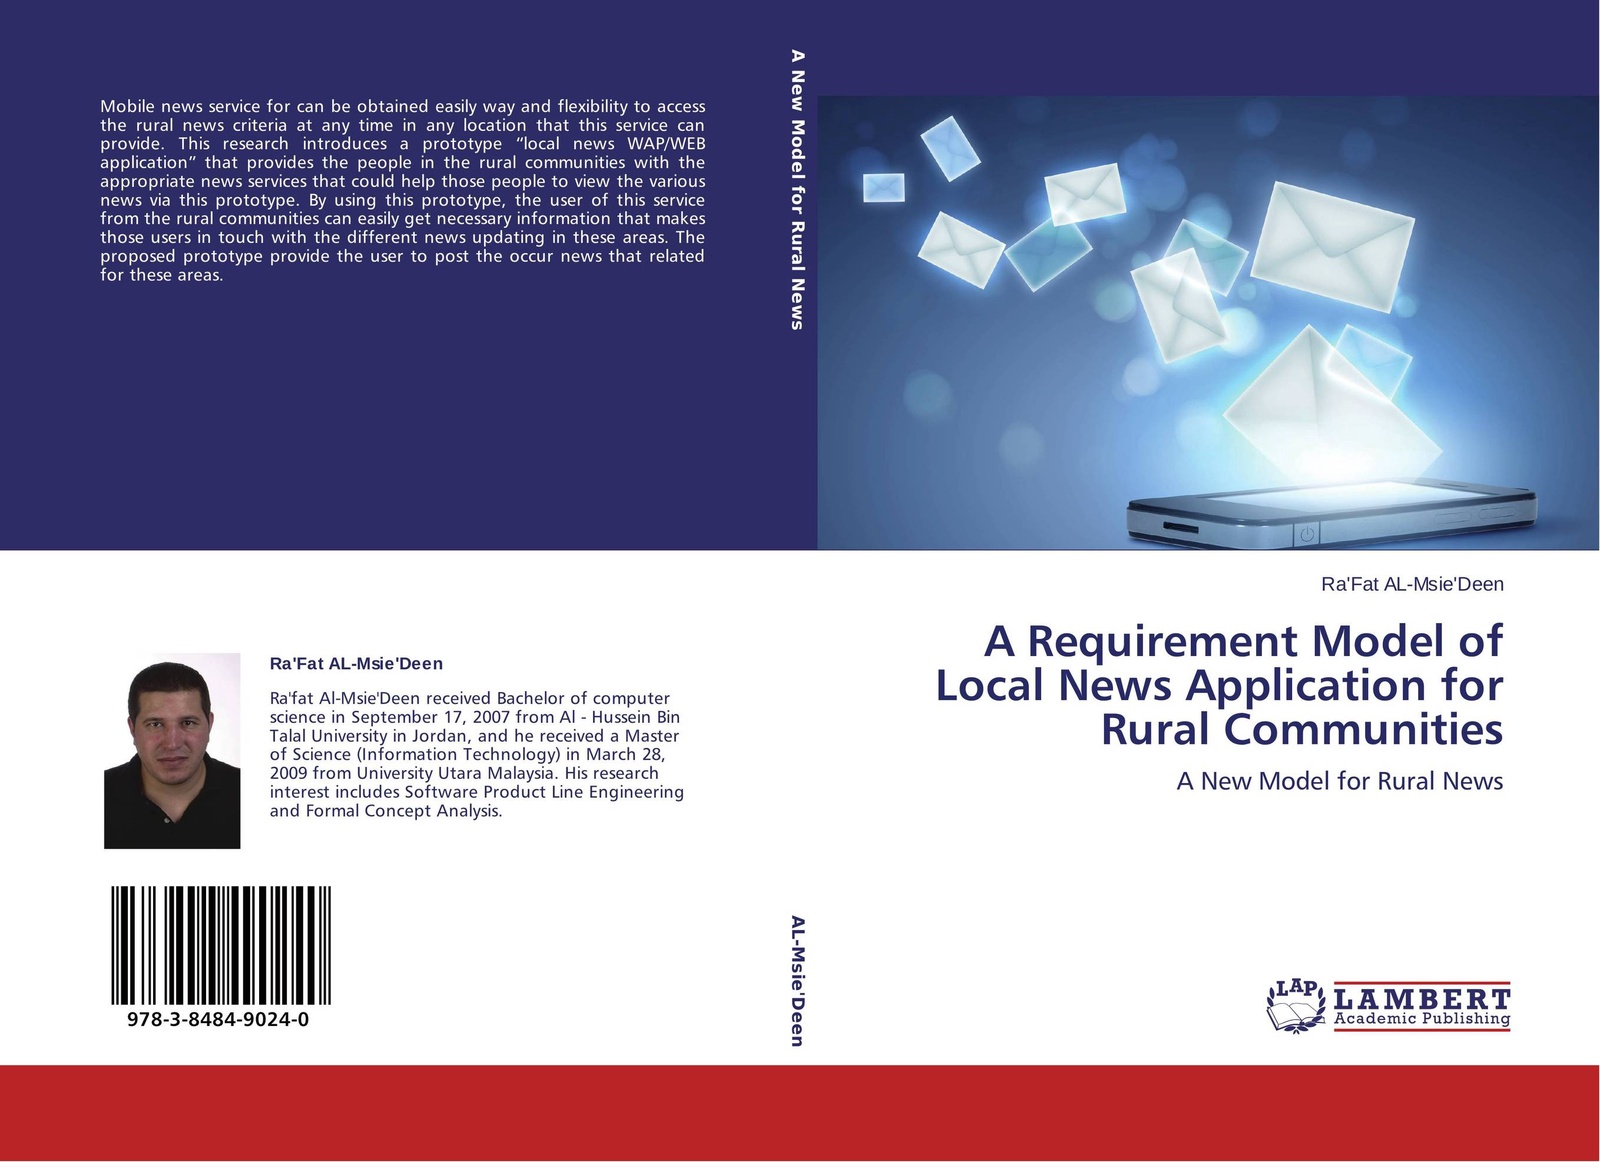 Ra'Fat AL-Msie'Deen A Requirement Model of Local News Application for Rural Communities news